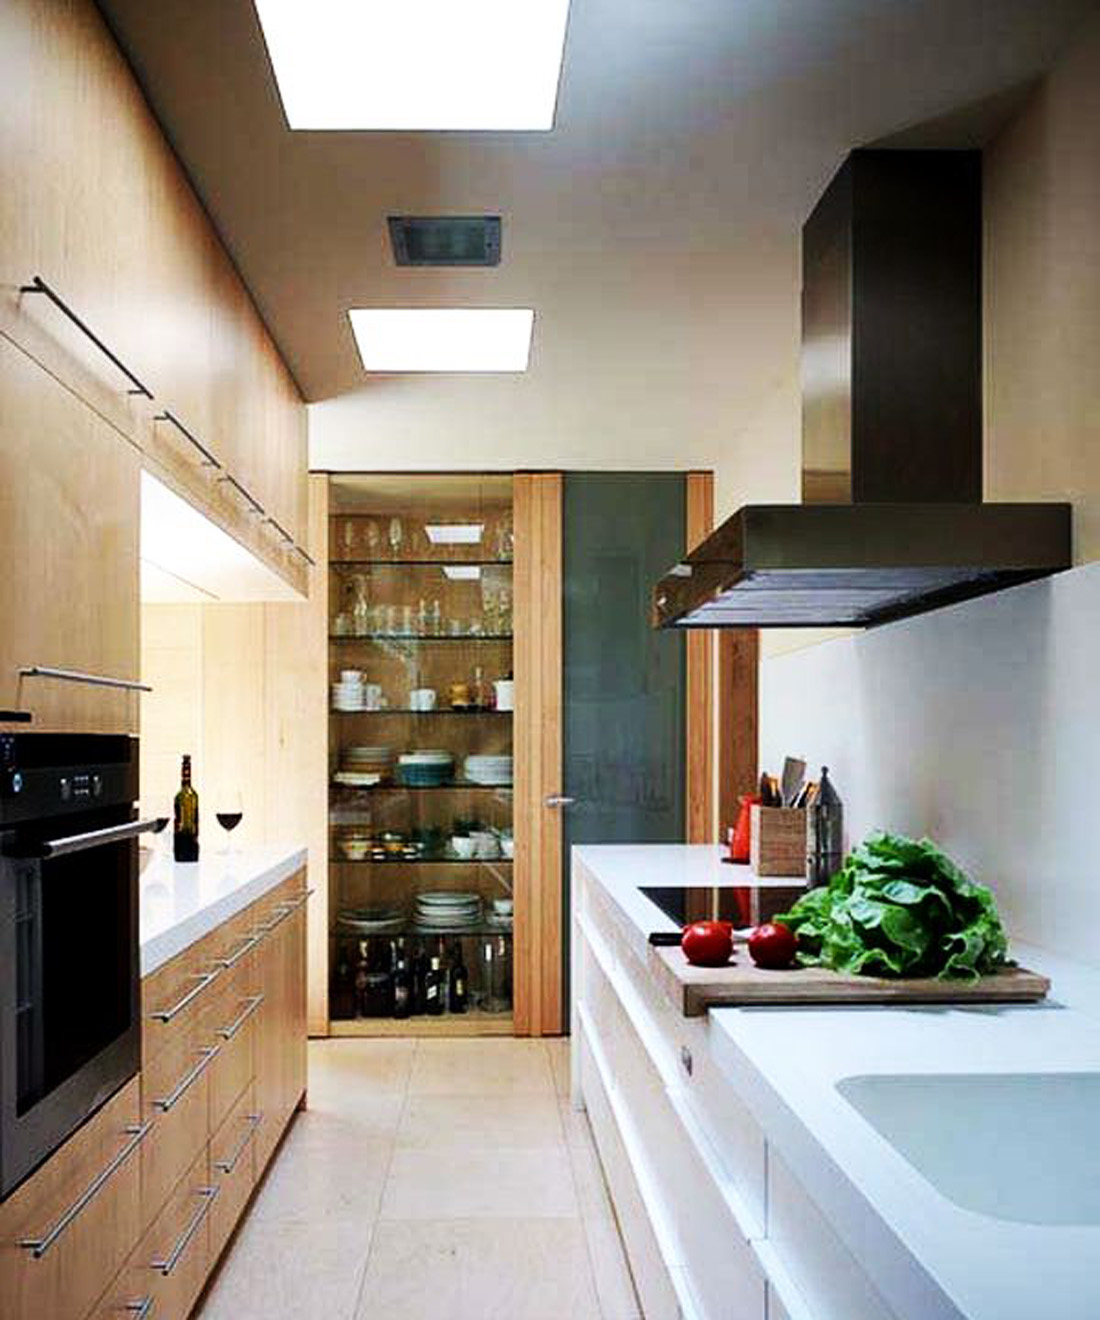 25 modern small kitchen design ideas - Small kitchen ...